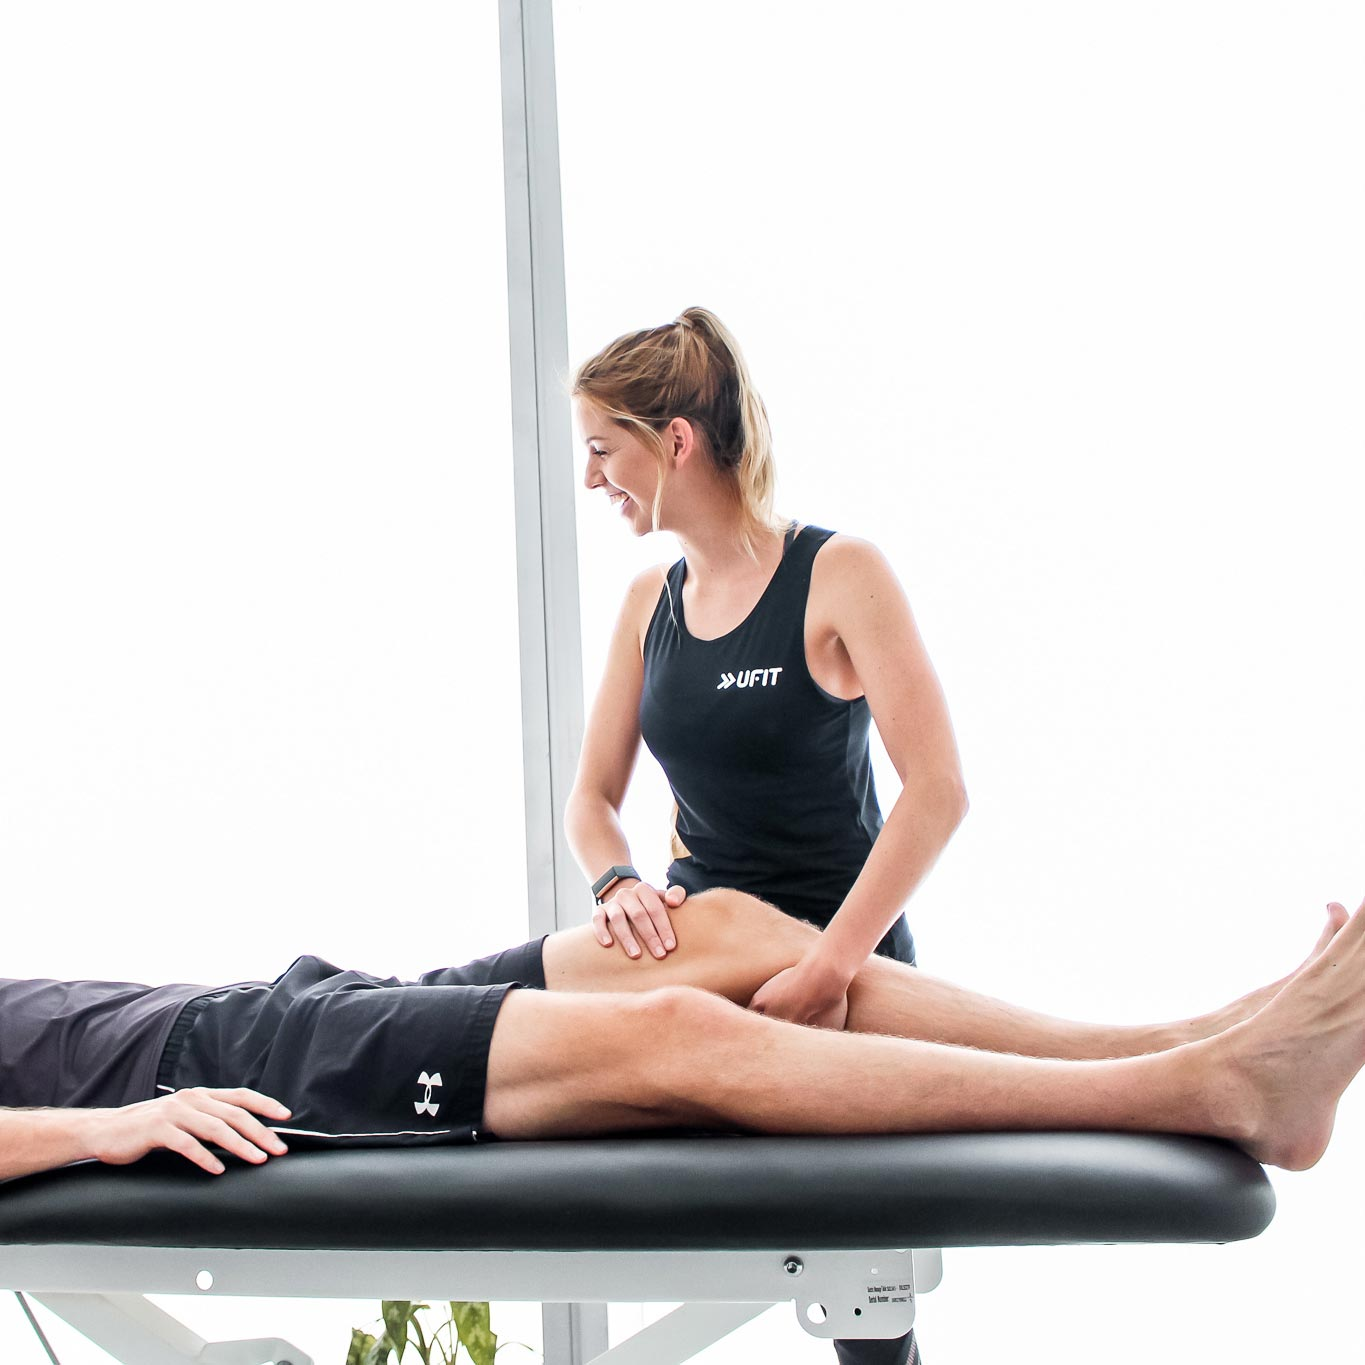 PhysiotherapyUFITClinicLucie